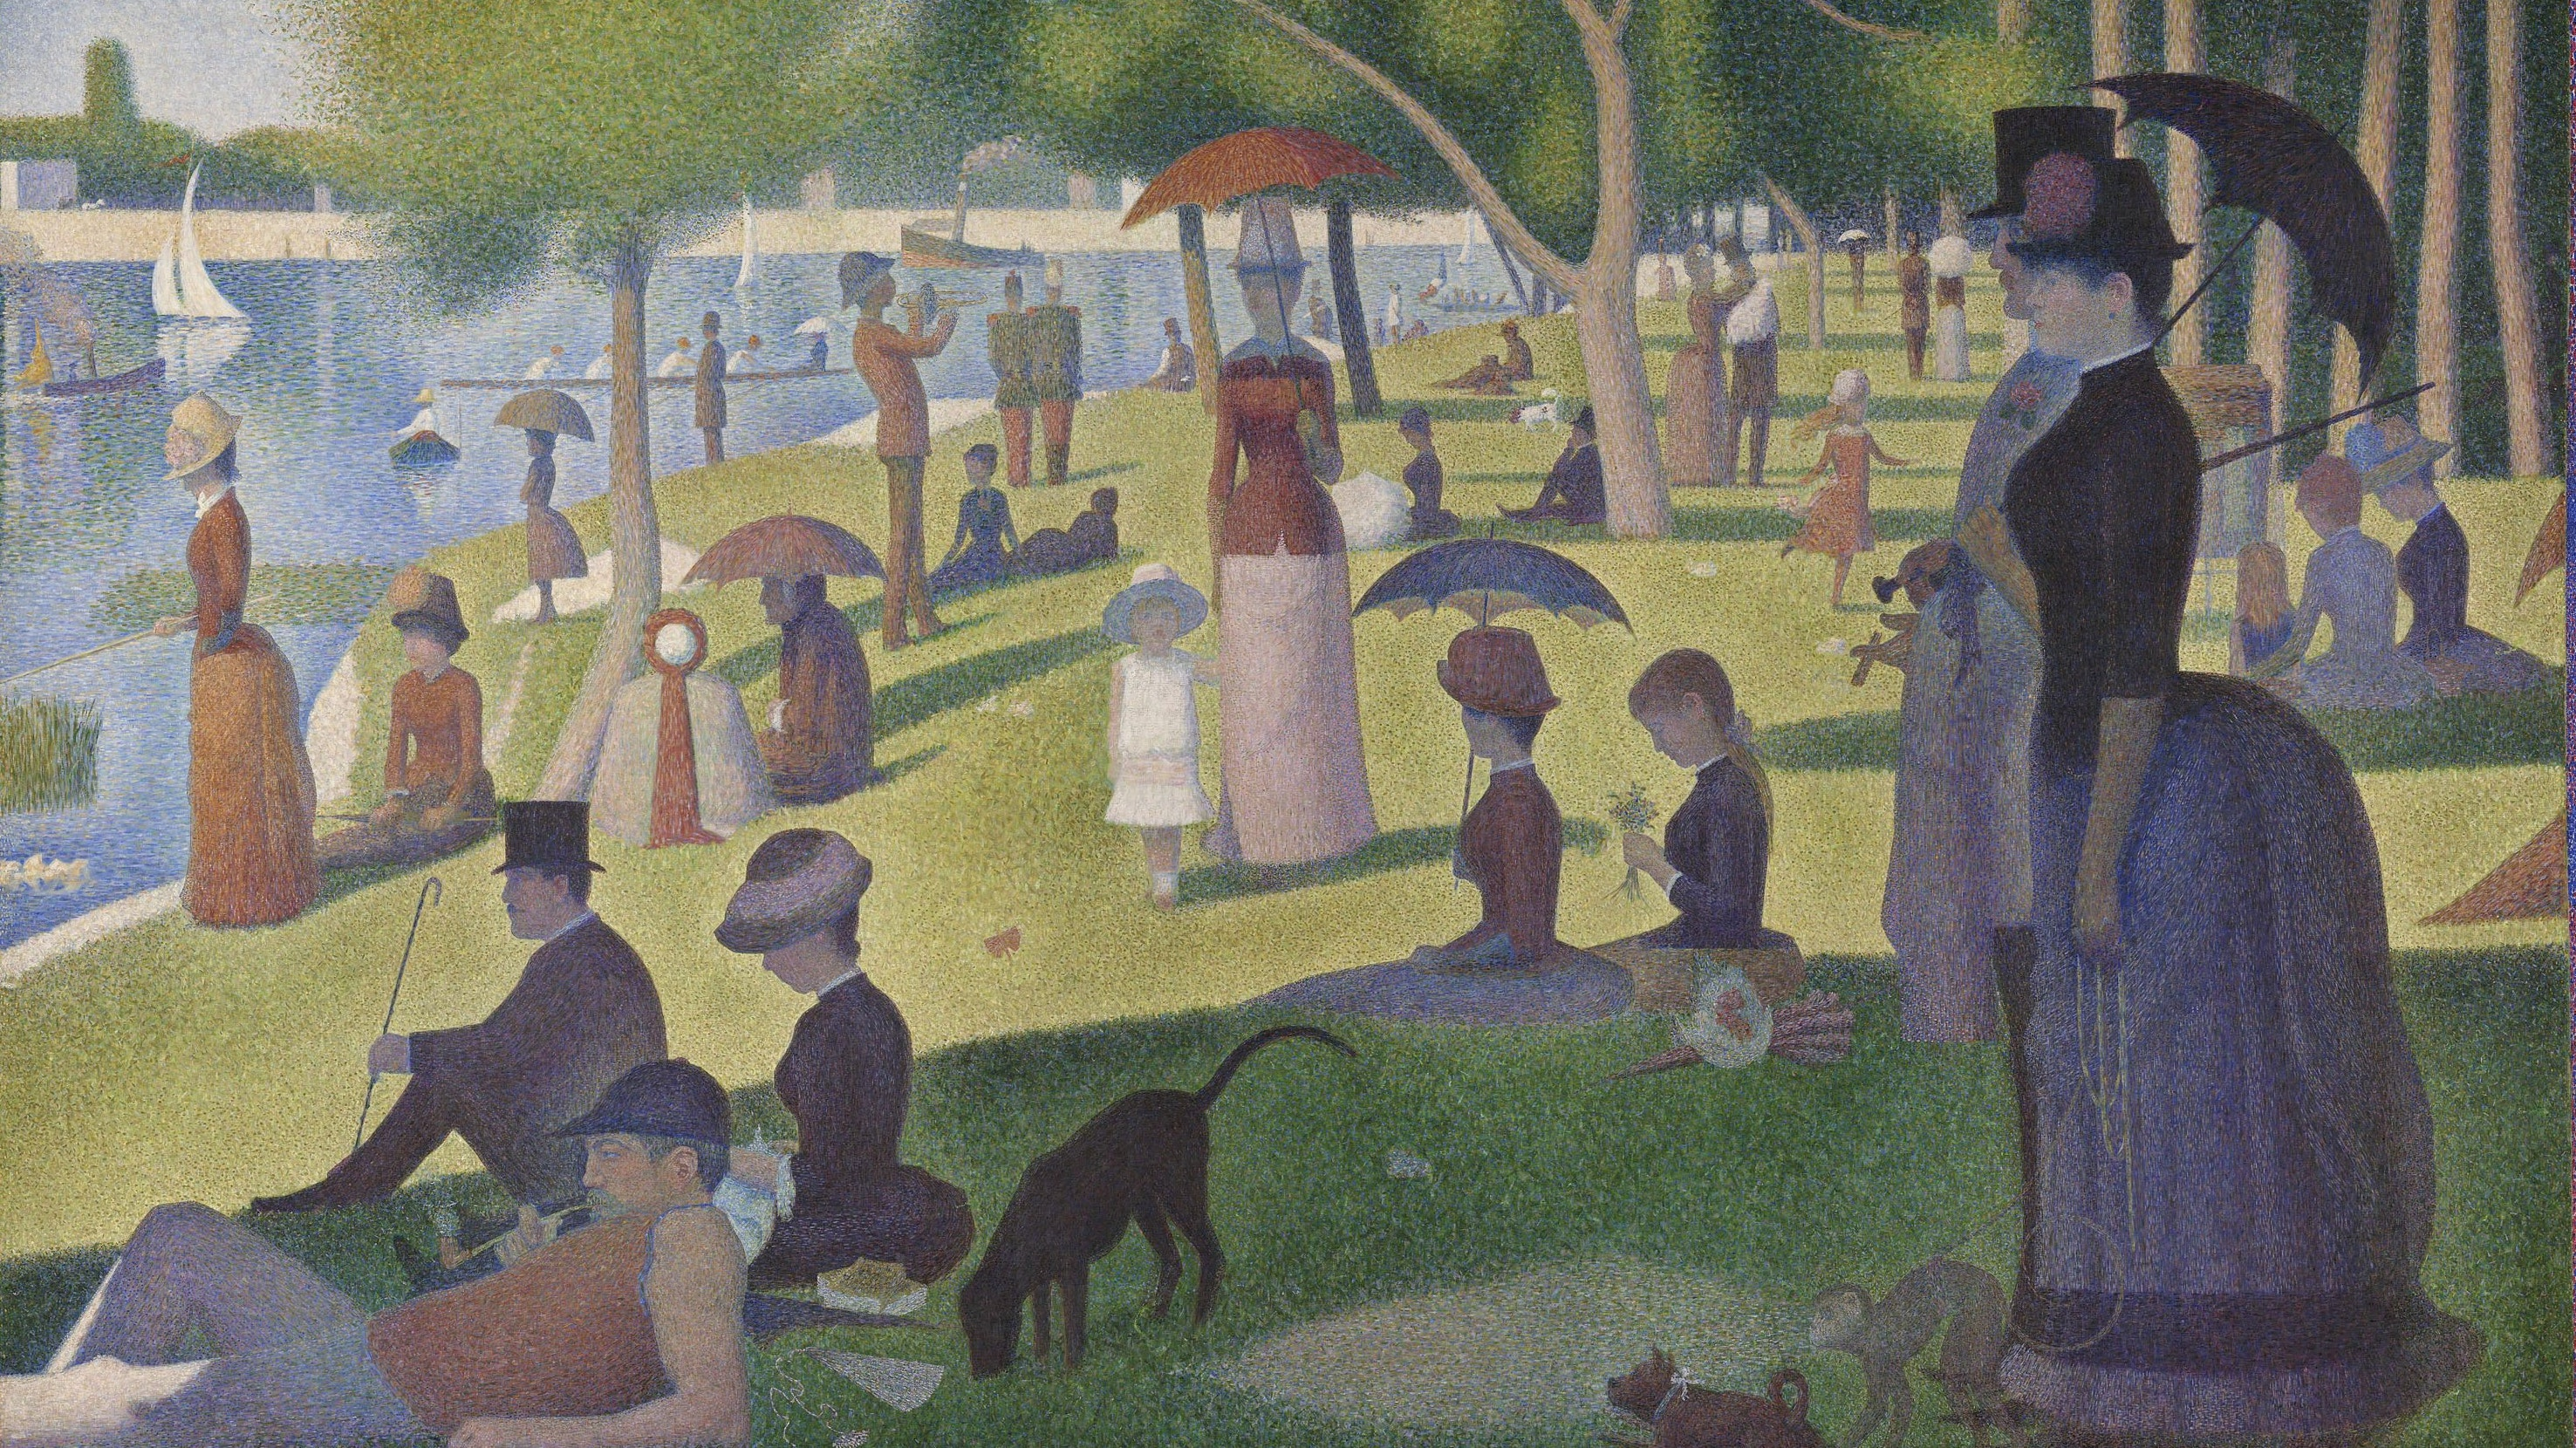 A scene of many people at a park looking at a body of water.